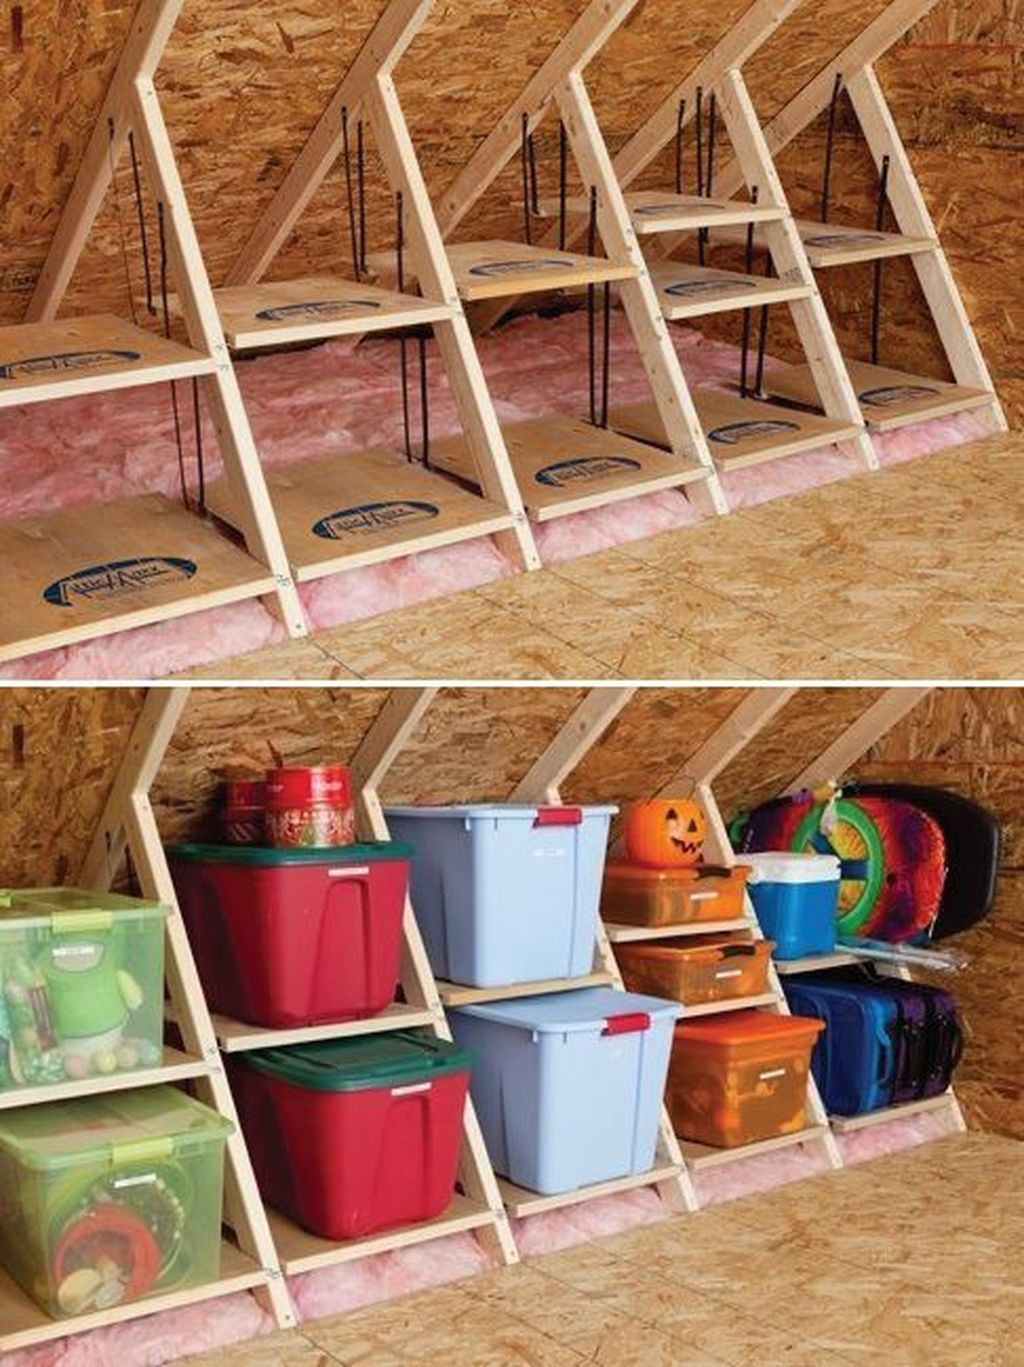 Fancy Diy Organizing Storage Projects Ideas To Try 09